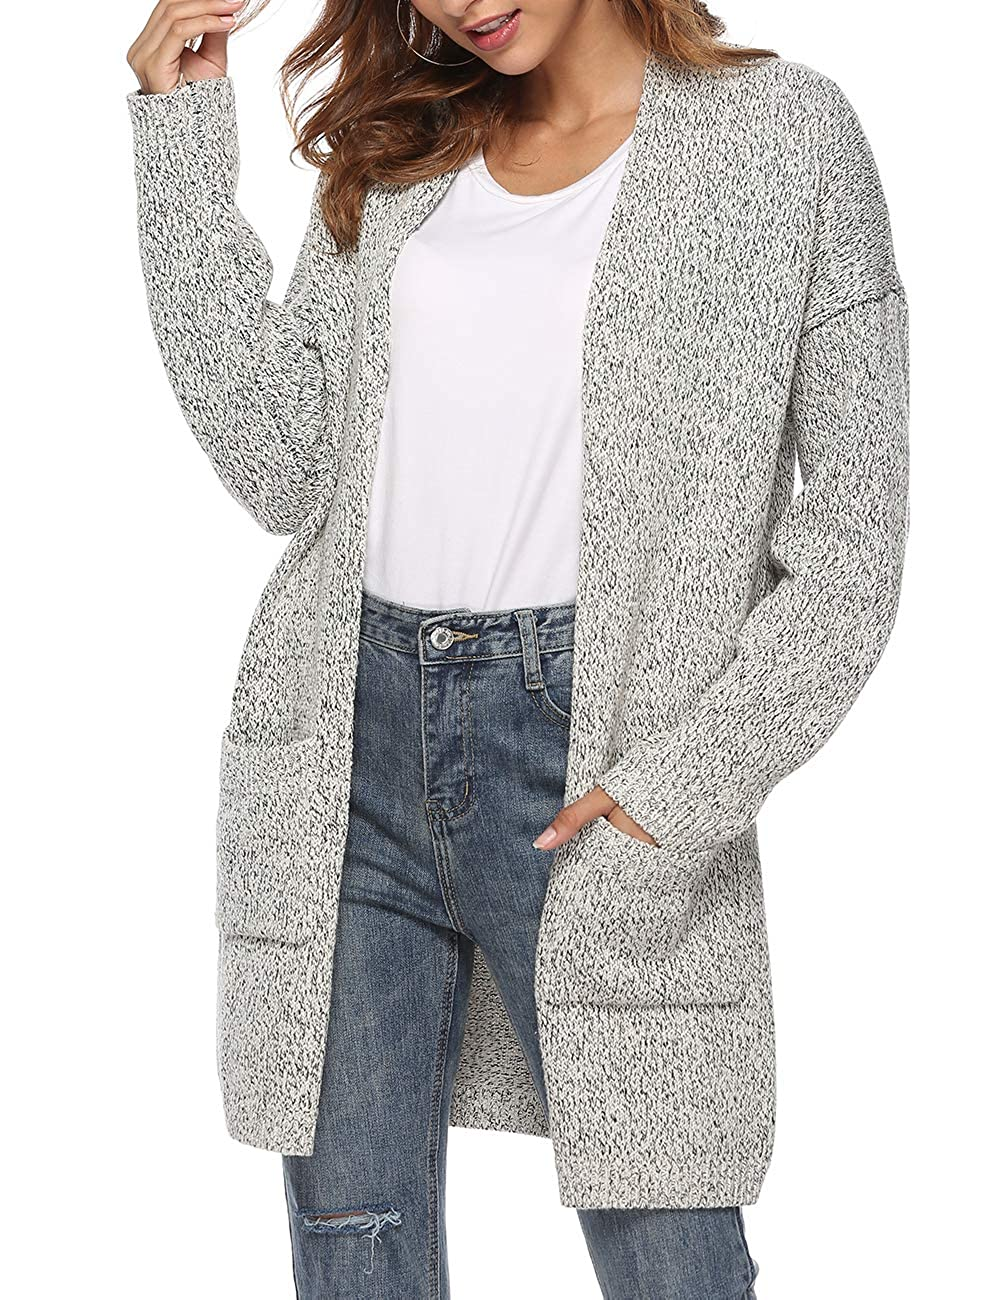 7cf1280739ac0f Amazon.com  Ray JrMALL Women s Long Sleeve Open Front Cardigans Mid Length  Loose Knit Cardigan Sweater Grey XX Large  Clothing